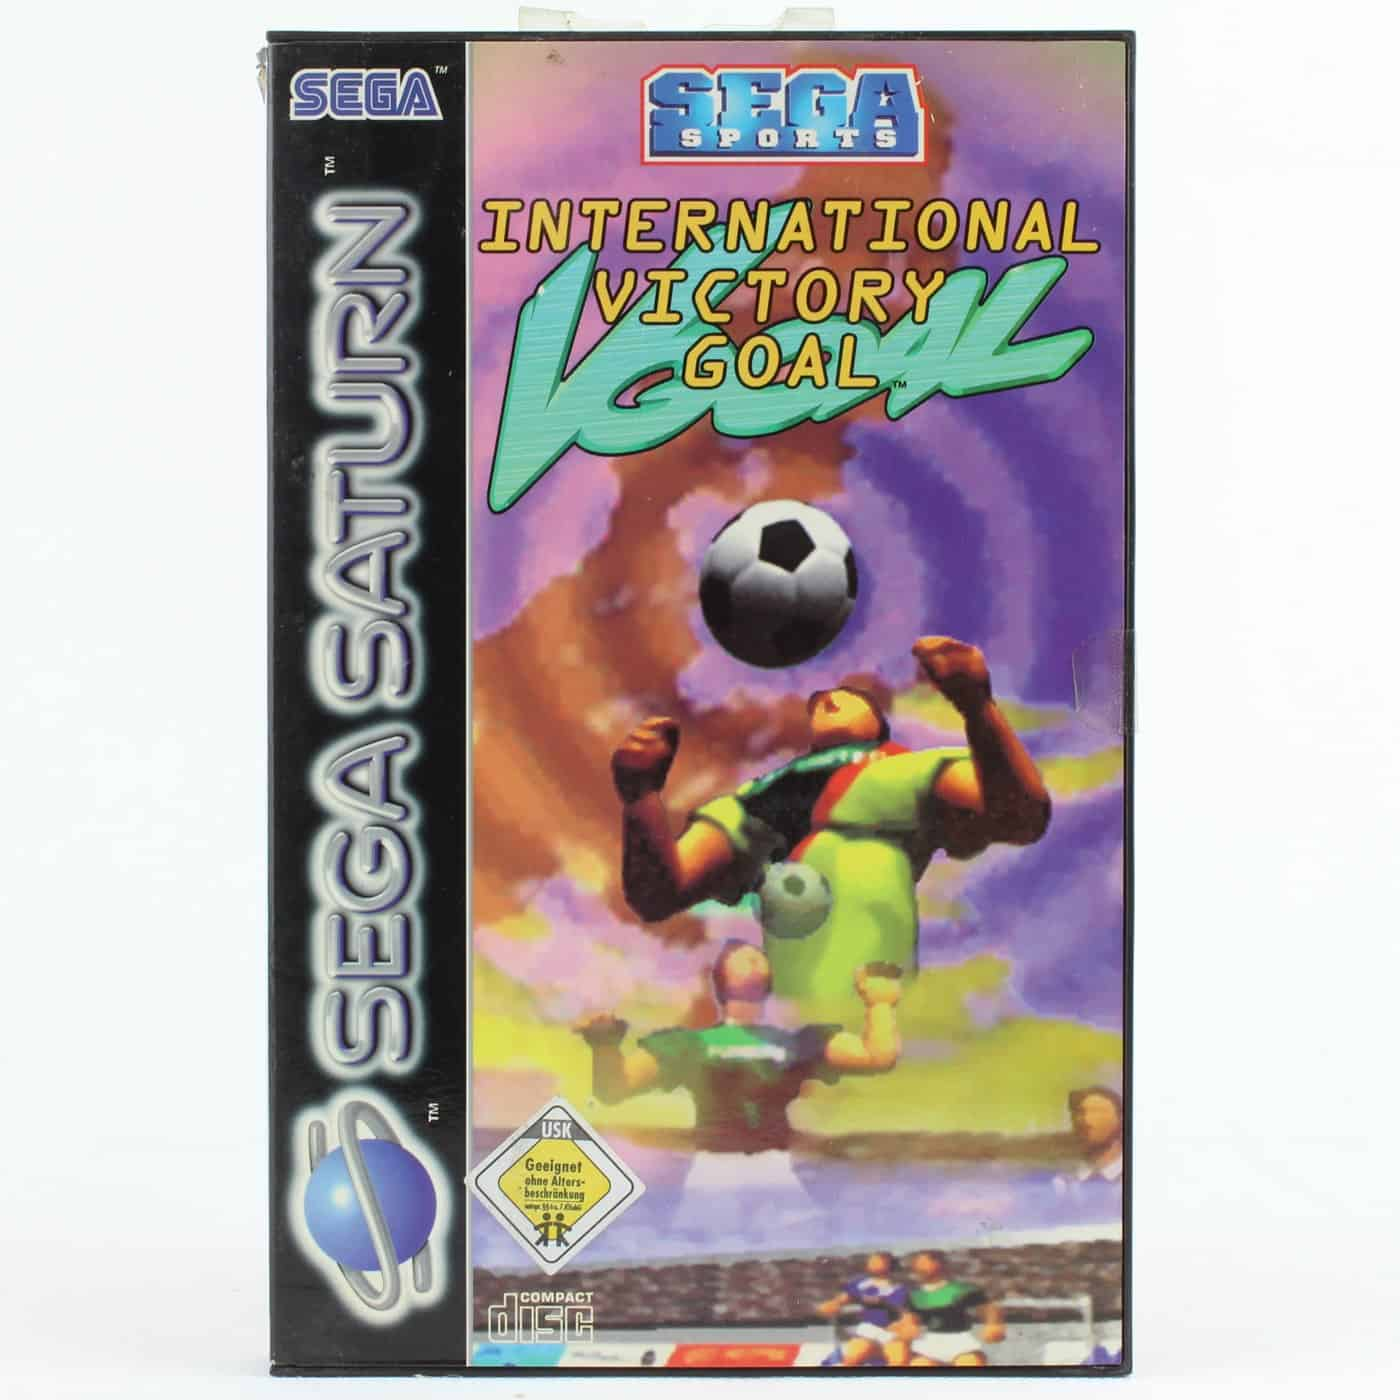 International Victory Goal (SEGA Saturn)